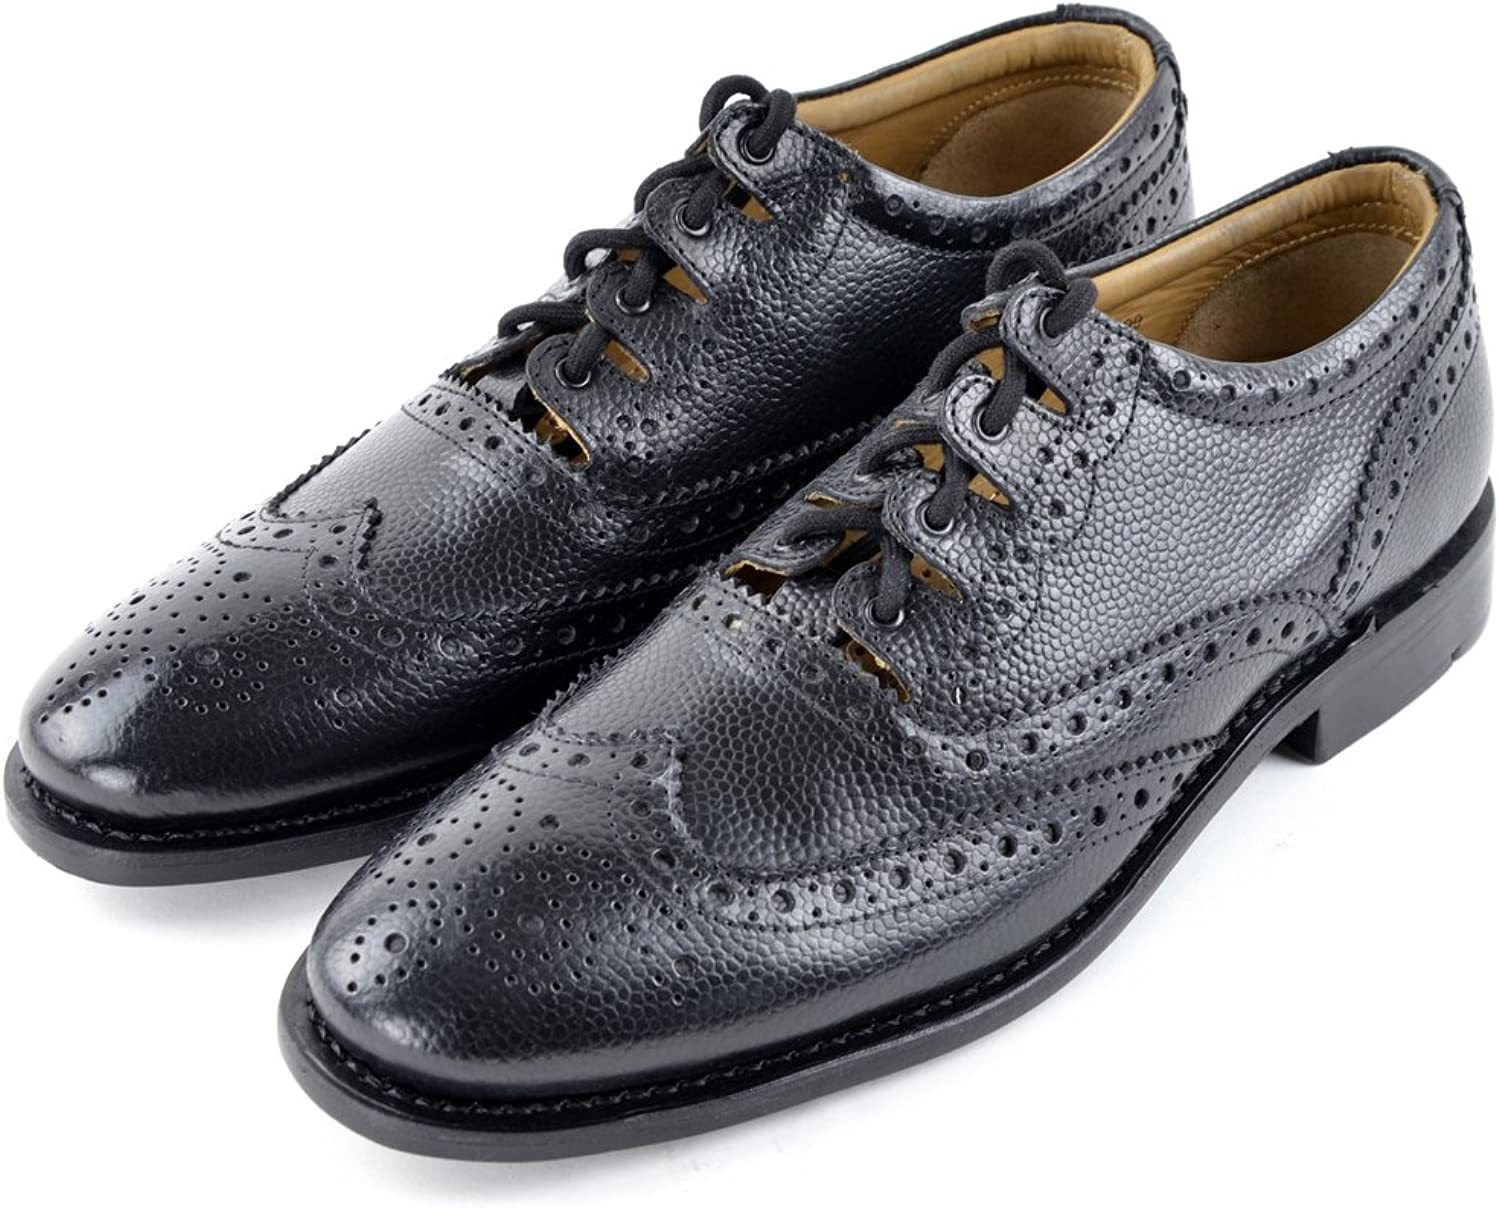 Kilt Society Mens Grained Leather Scottish Ghillie Brogues